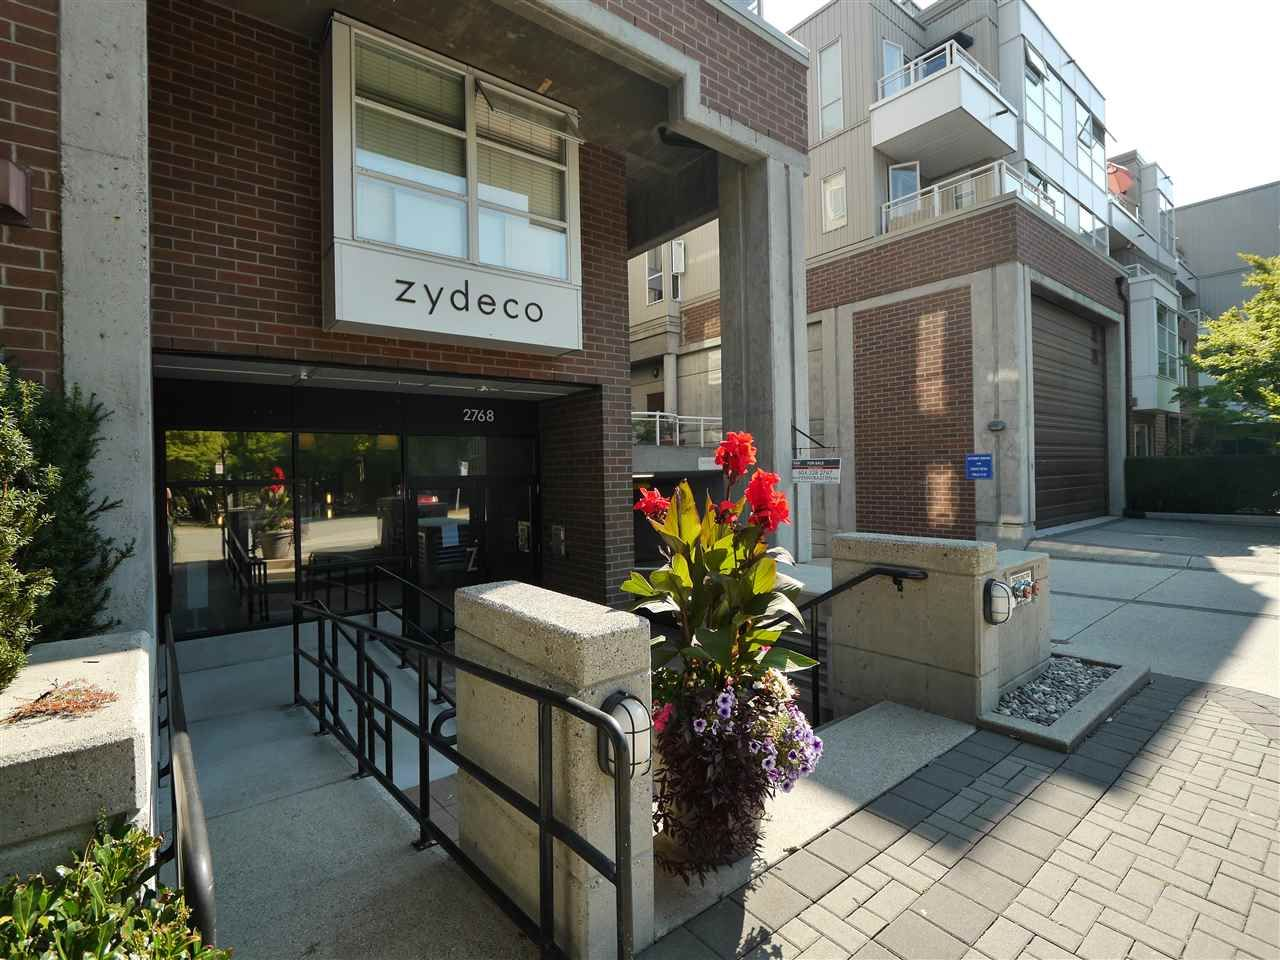 """Photo 2: Photos: 315 2768 CRANBERRY Drive in Vancouver: Kitsilano Condo for sale in """"ZYDECO"""" (Vancouver West)  : MLS®# R2566057"""